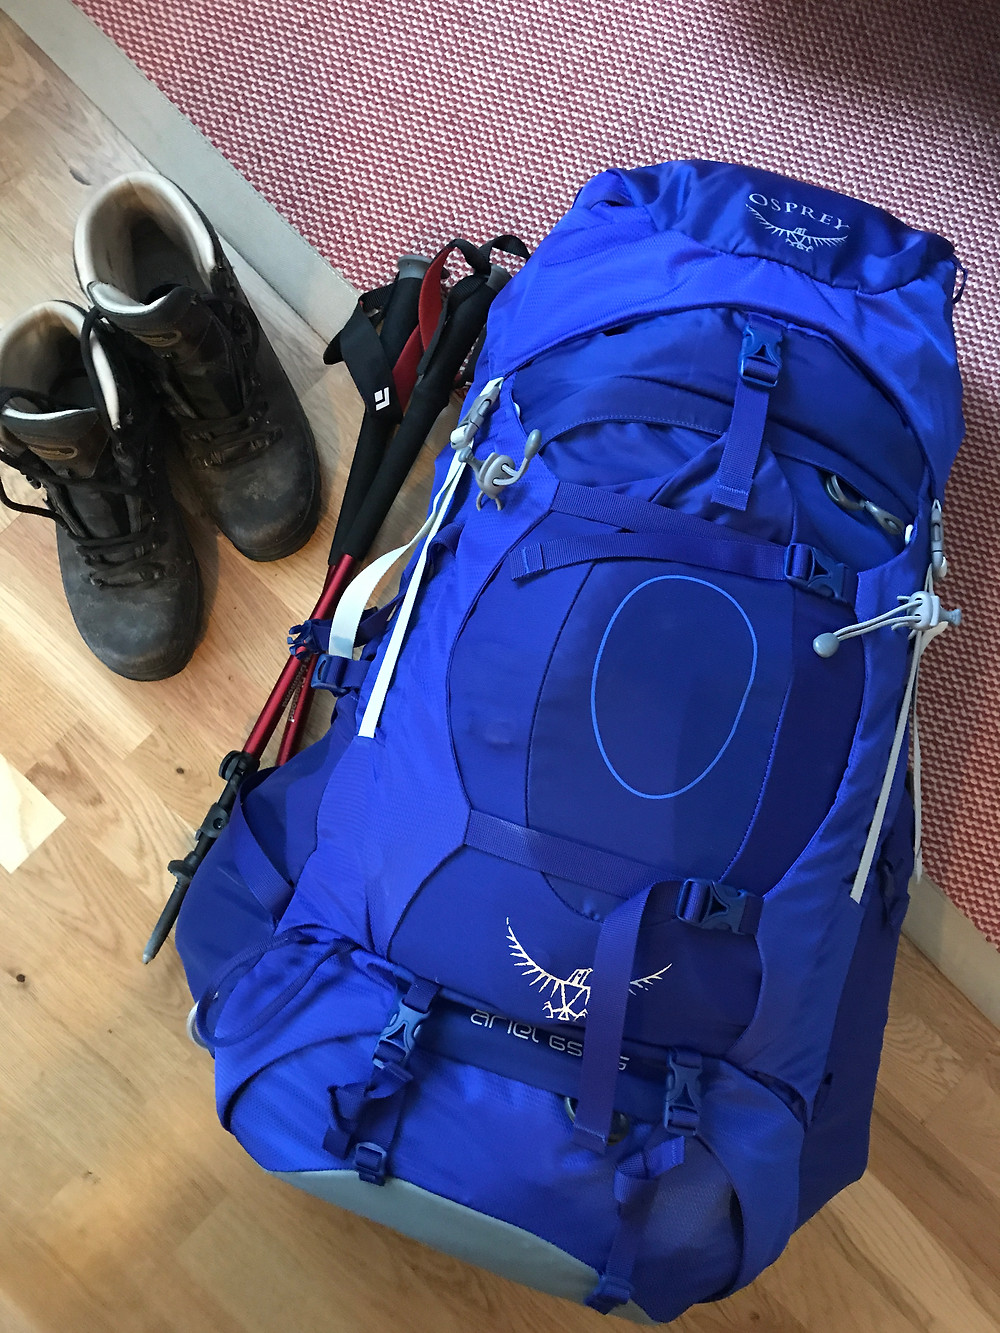 Picture of my Blue Osprey 65 litre pack on the floor with walking poles and walking boots